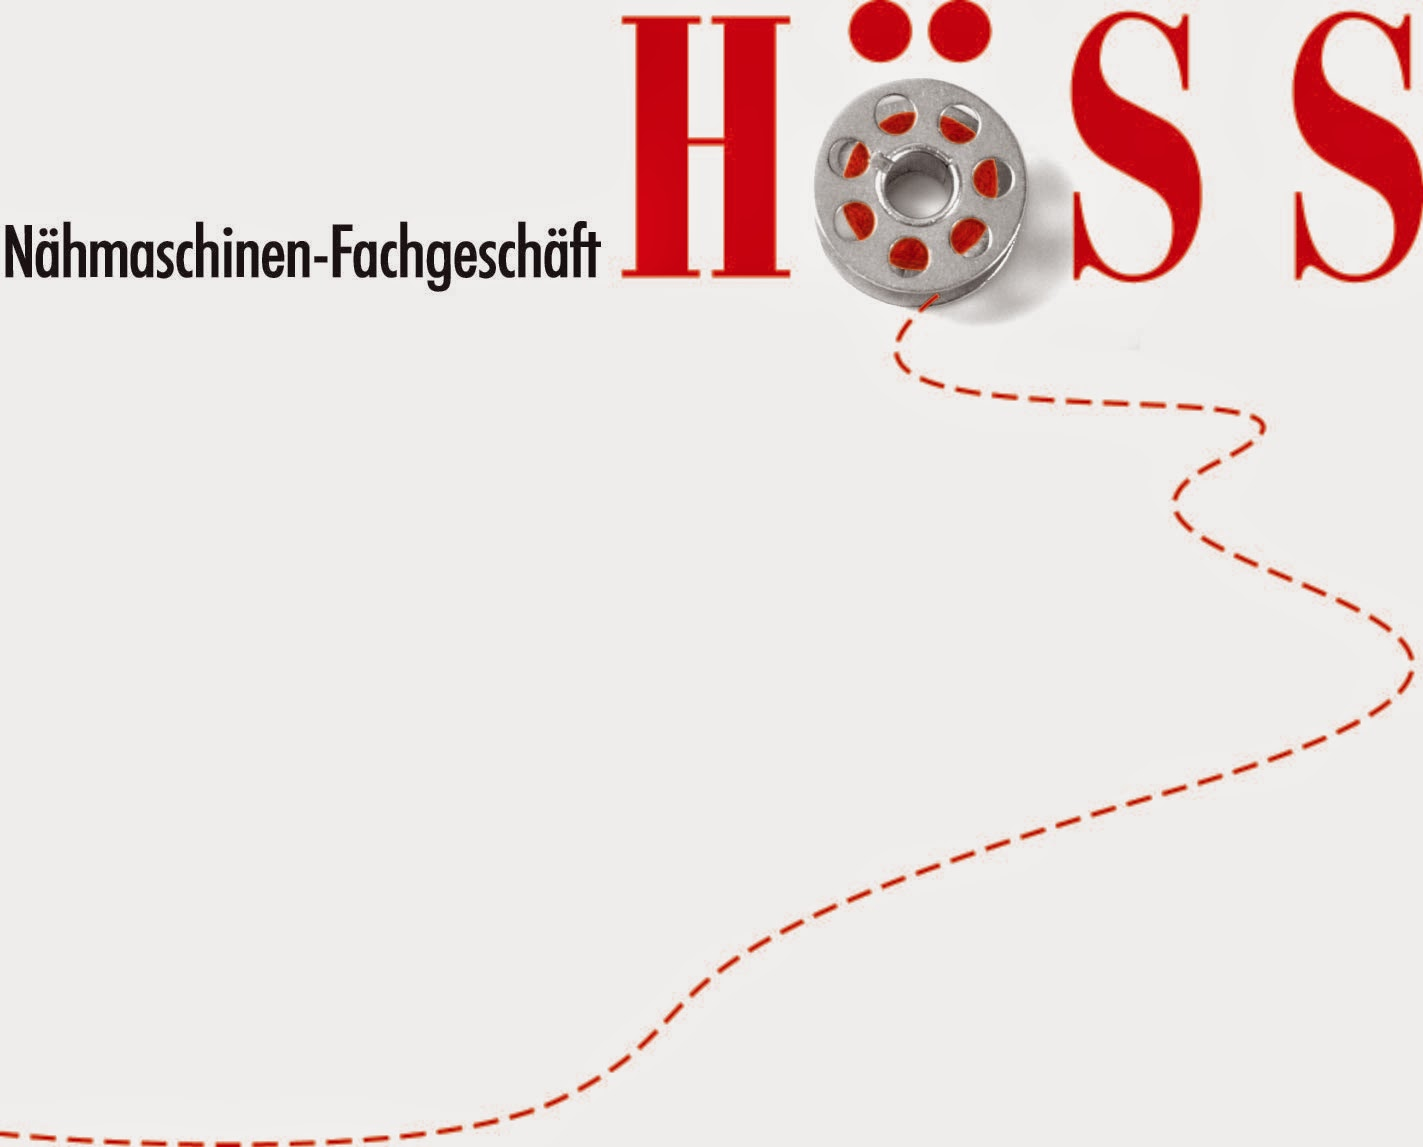 http://naehmaschinen-hoess.de/cms/index.php?option=com_content&view=category&layout=blog&id=22&Itemid=32